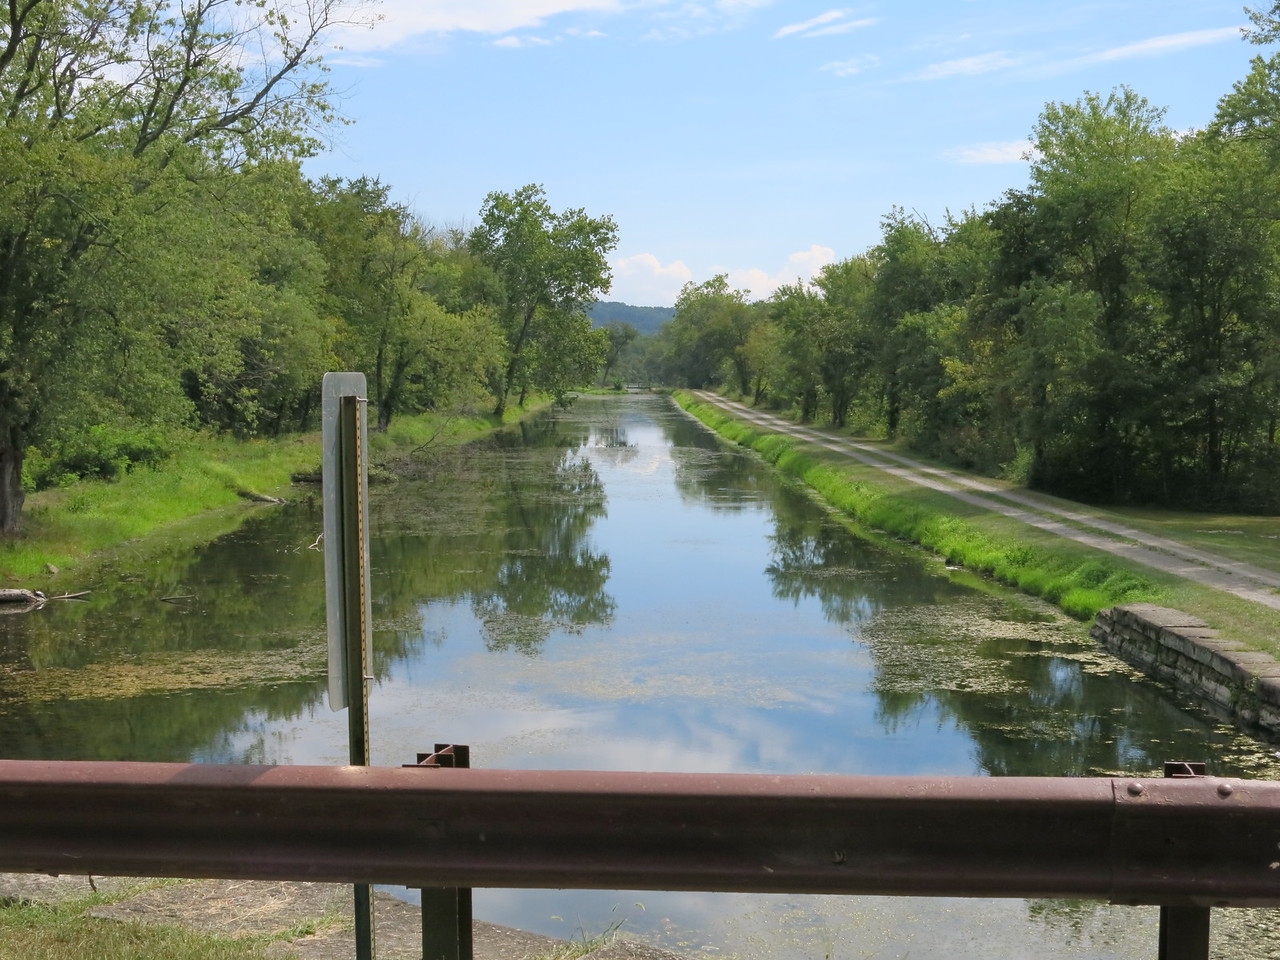 Looking downstream from Lock 70